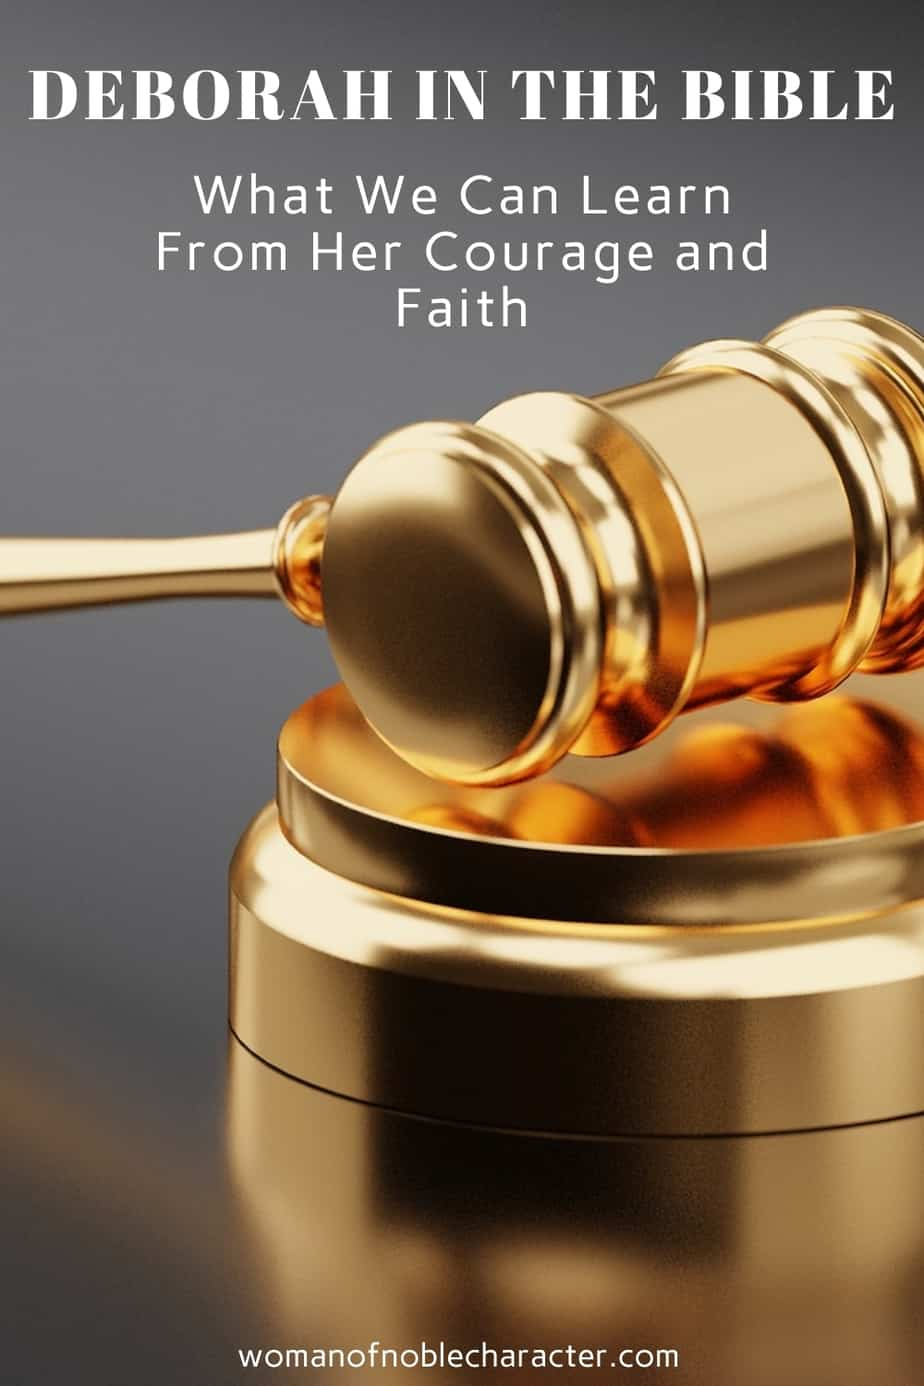 image of gavel with text overlay Deborah in the Bible: What we can learn from her about courage and faith